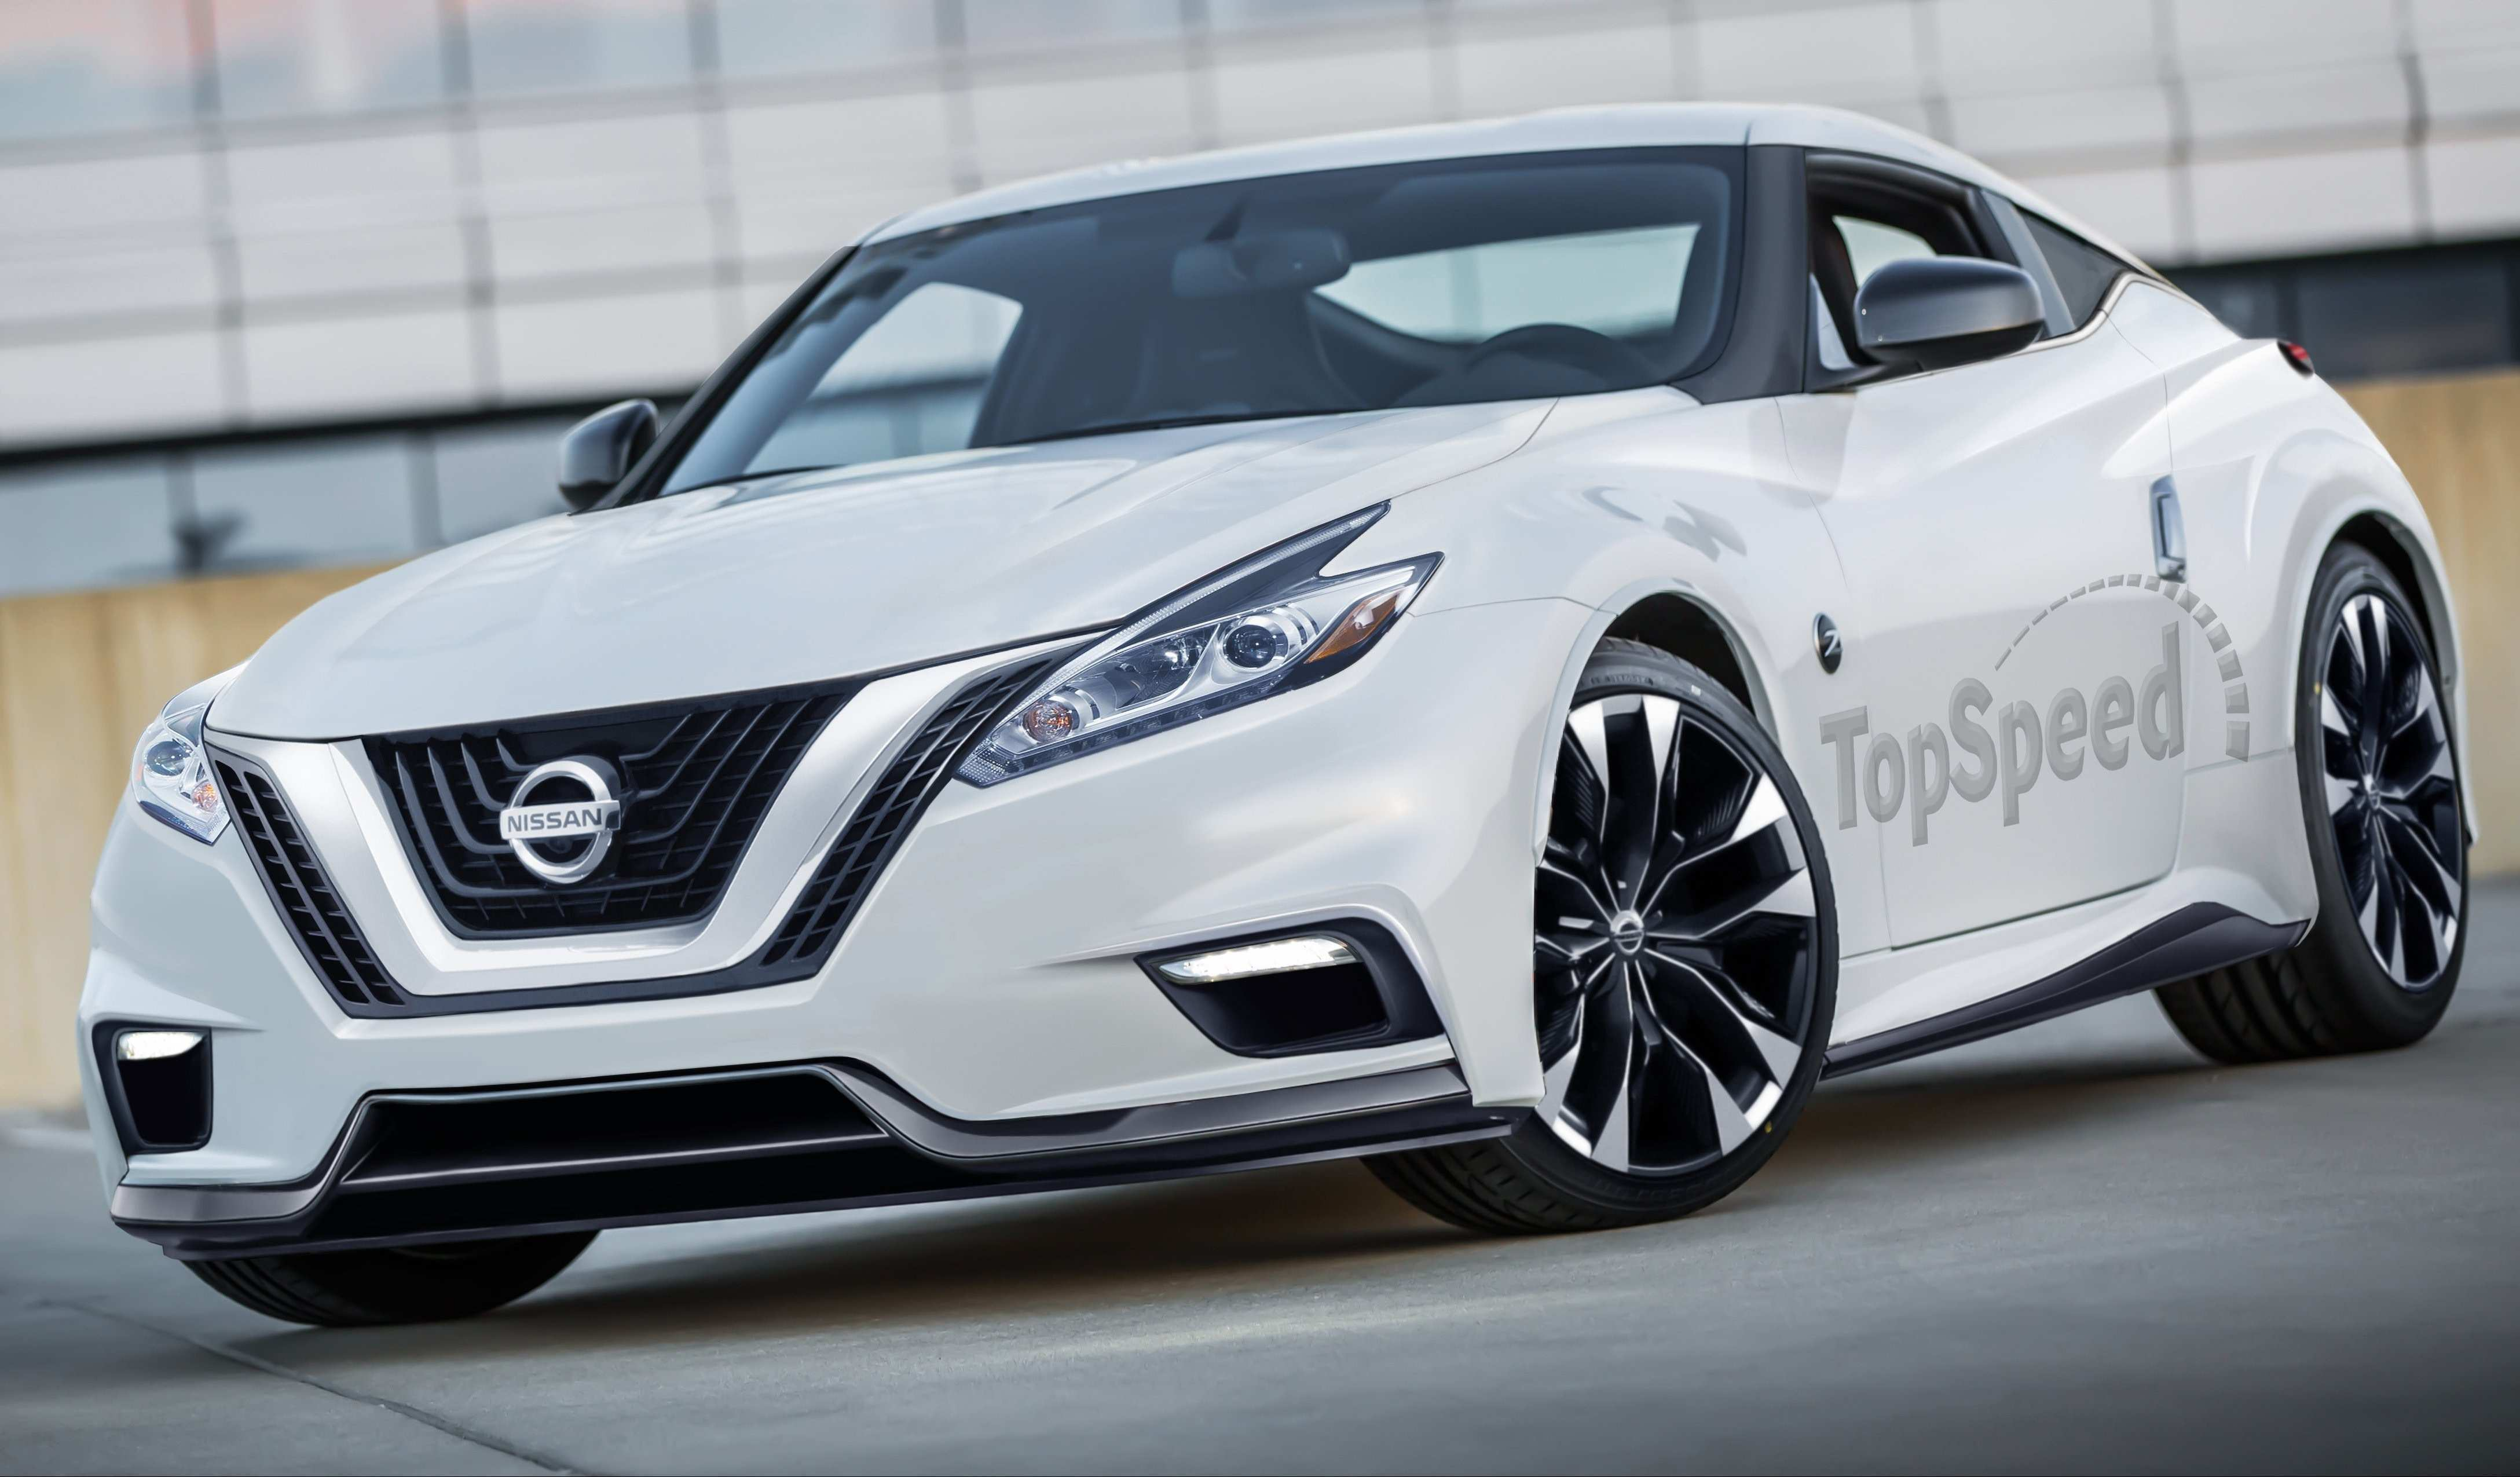 93 All New Best When Do Nissan 2019 Come Out Review Specs And Release Date Rumors by Best When Do Nissan 2019 Come Out Review Specs And Release Date